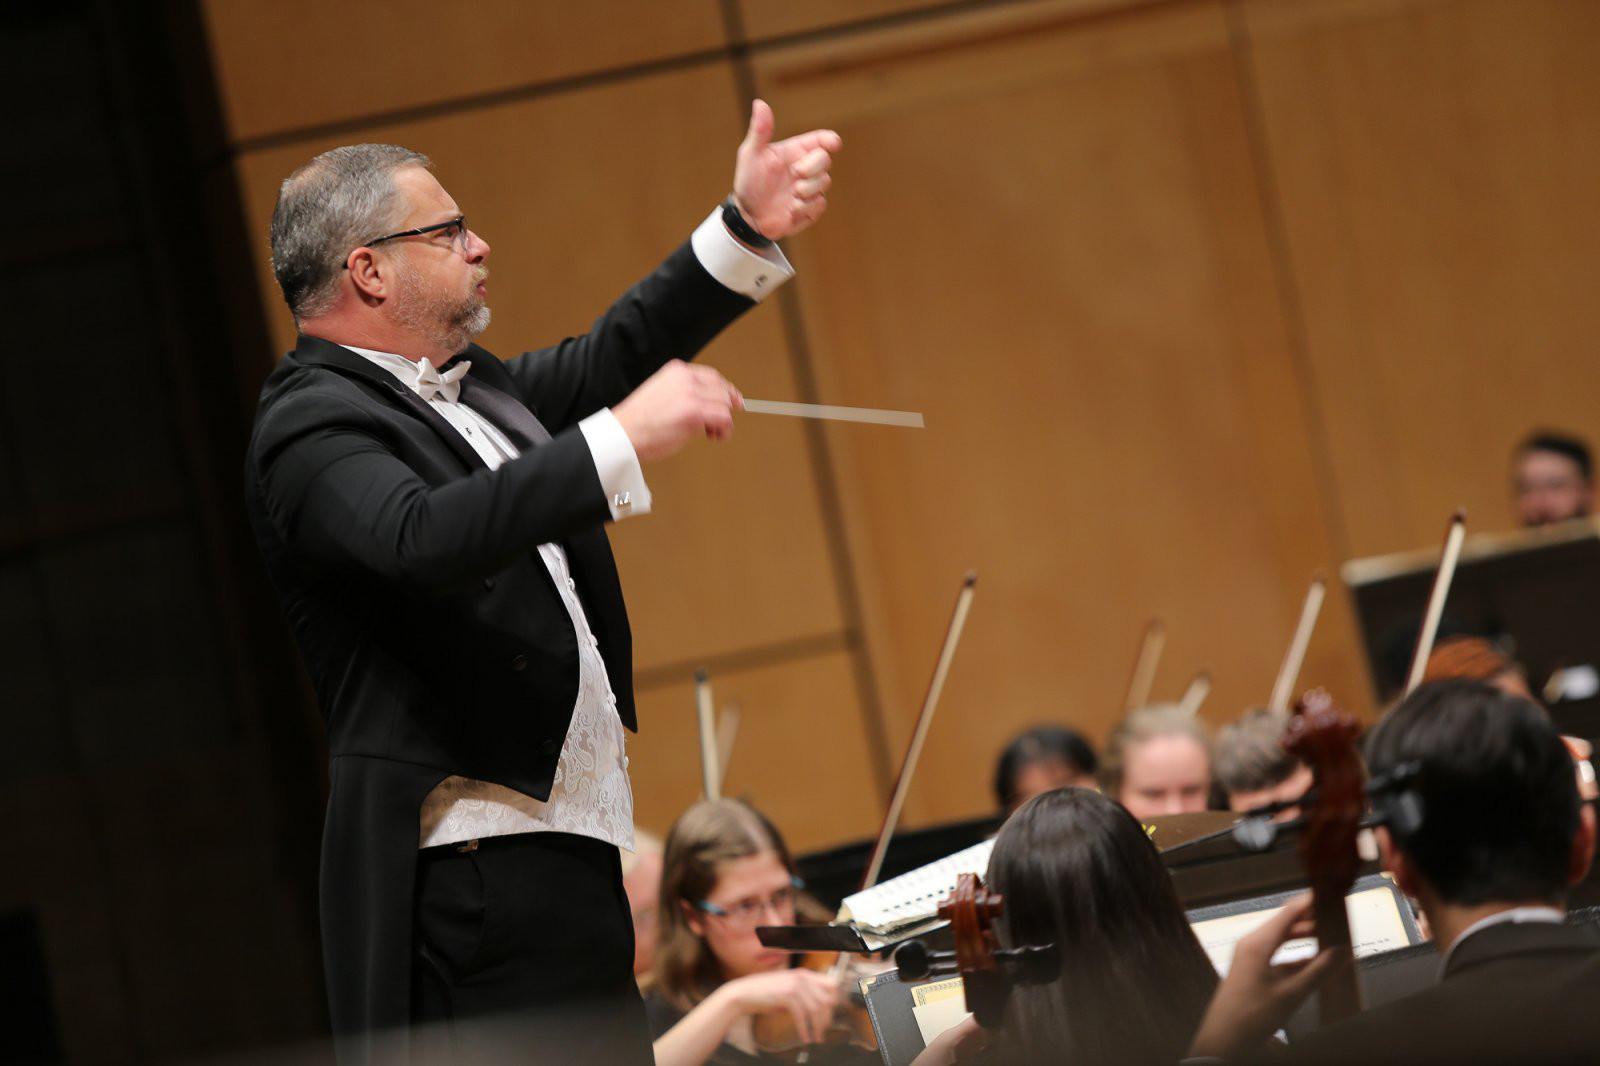 Brian Mast conducts the Goshen Symphony Orchestra